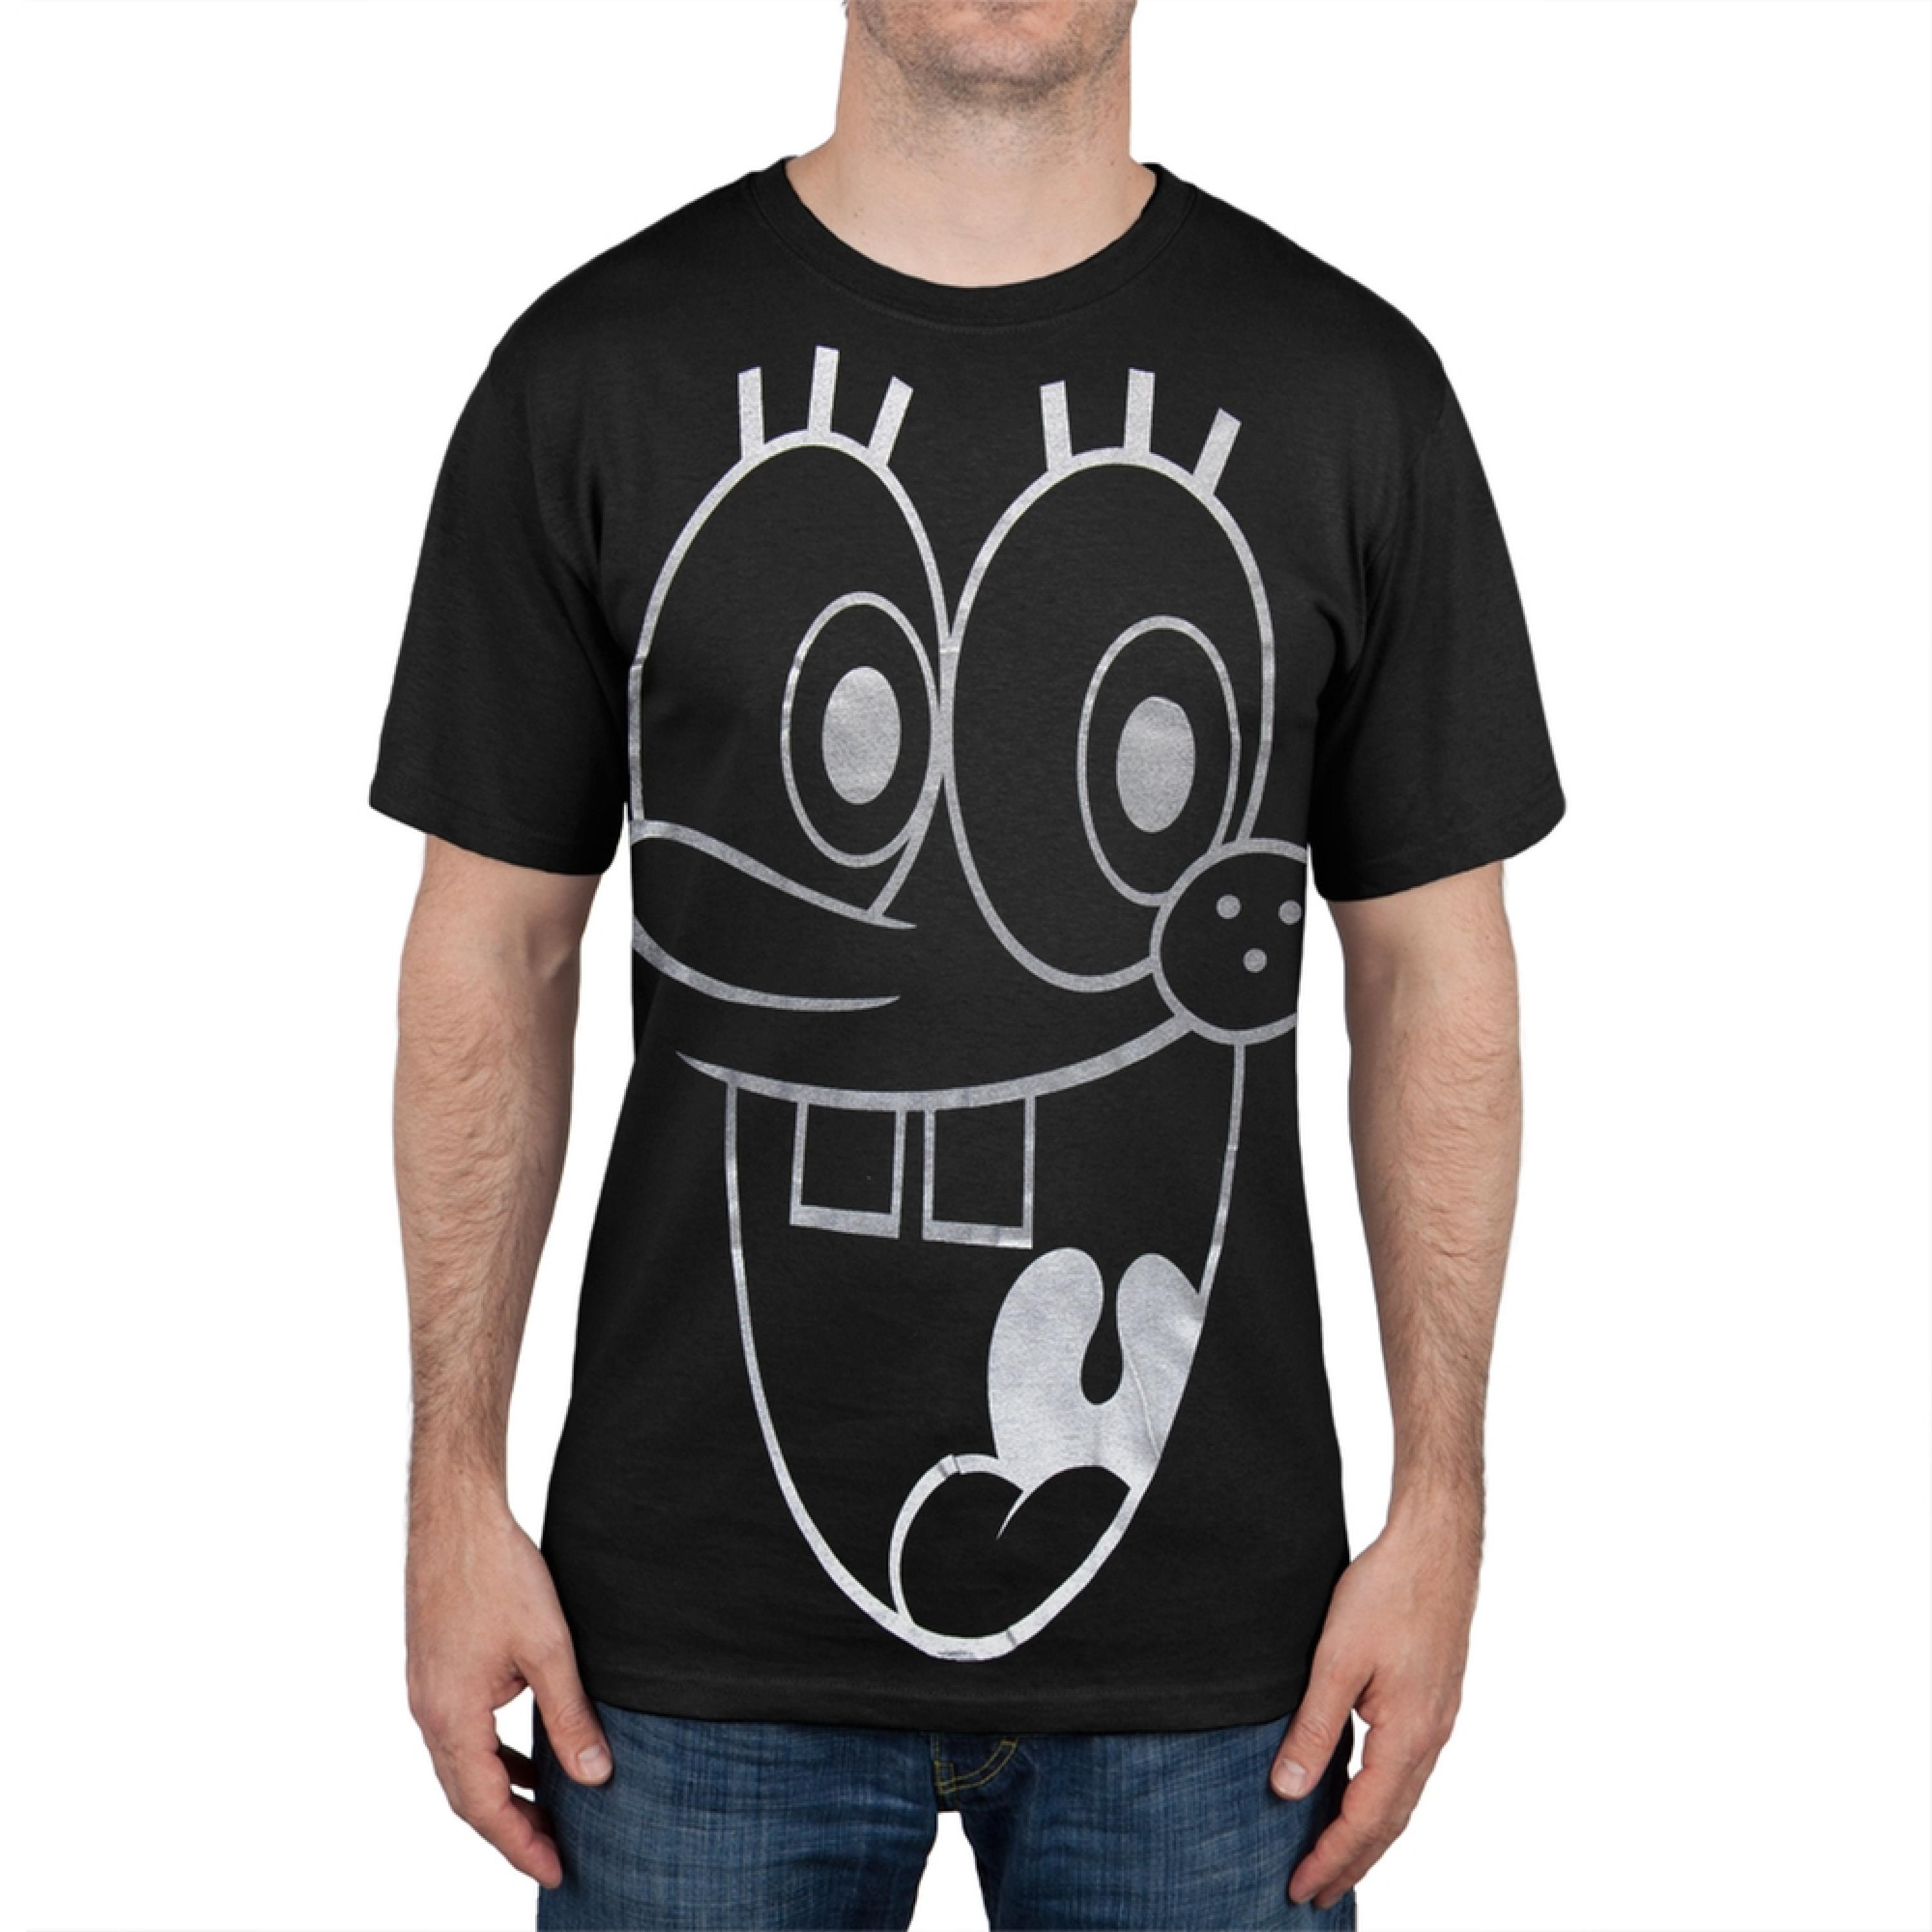 Spongebob Squarepants - Big Face Foil T-Shirt